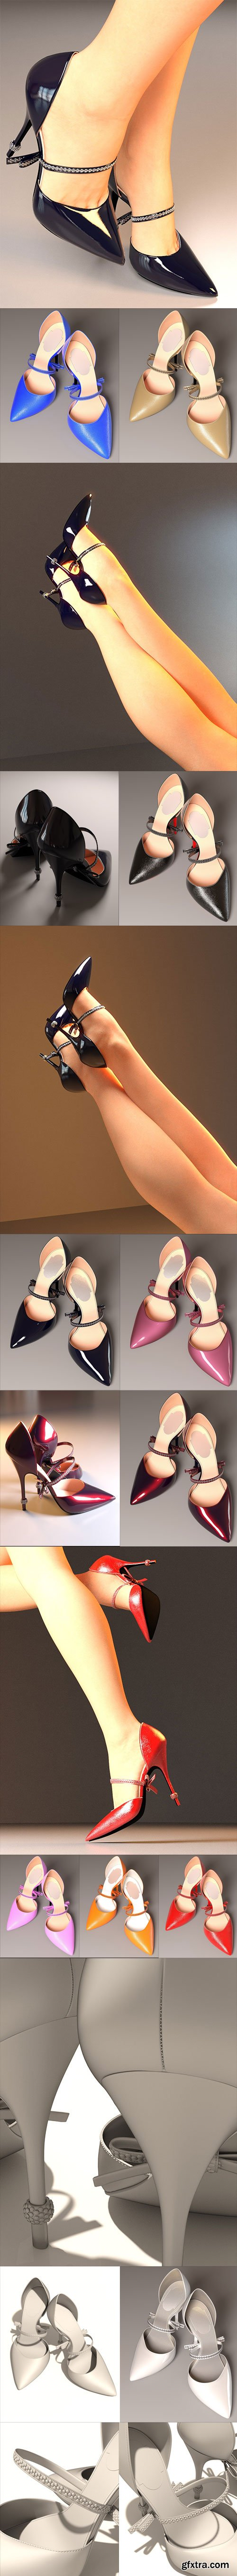 DAZ3D - Stiletto Heels for Genesis 3 Female(s) 35559